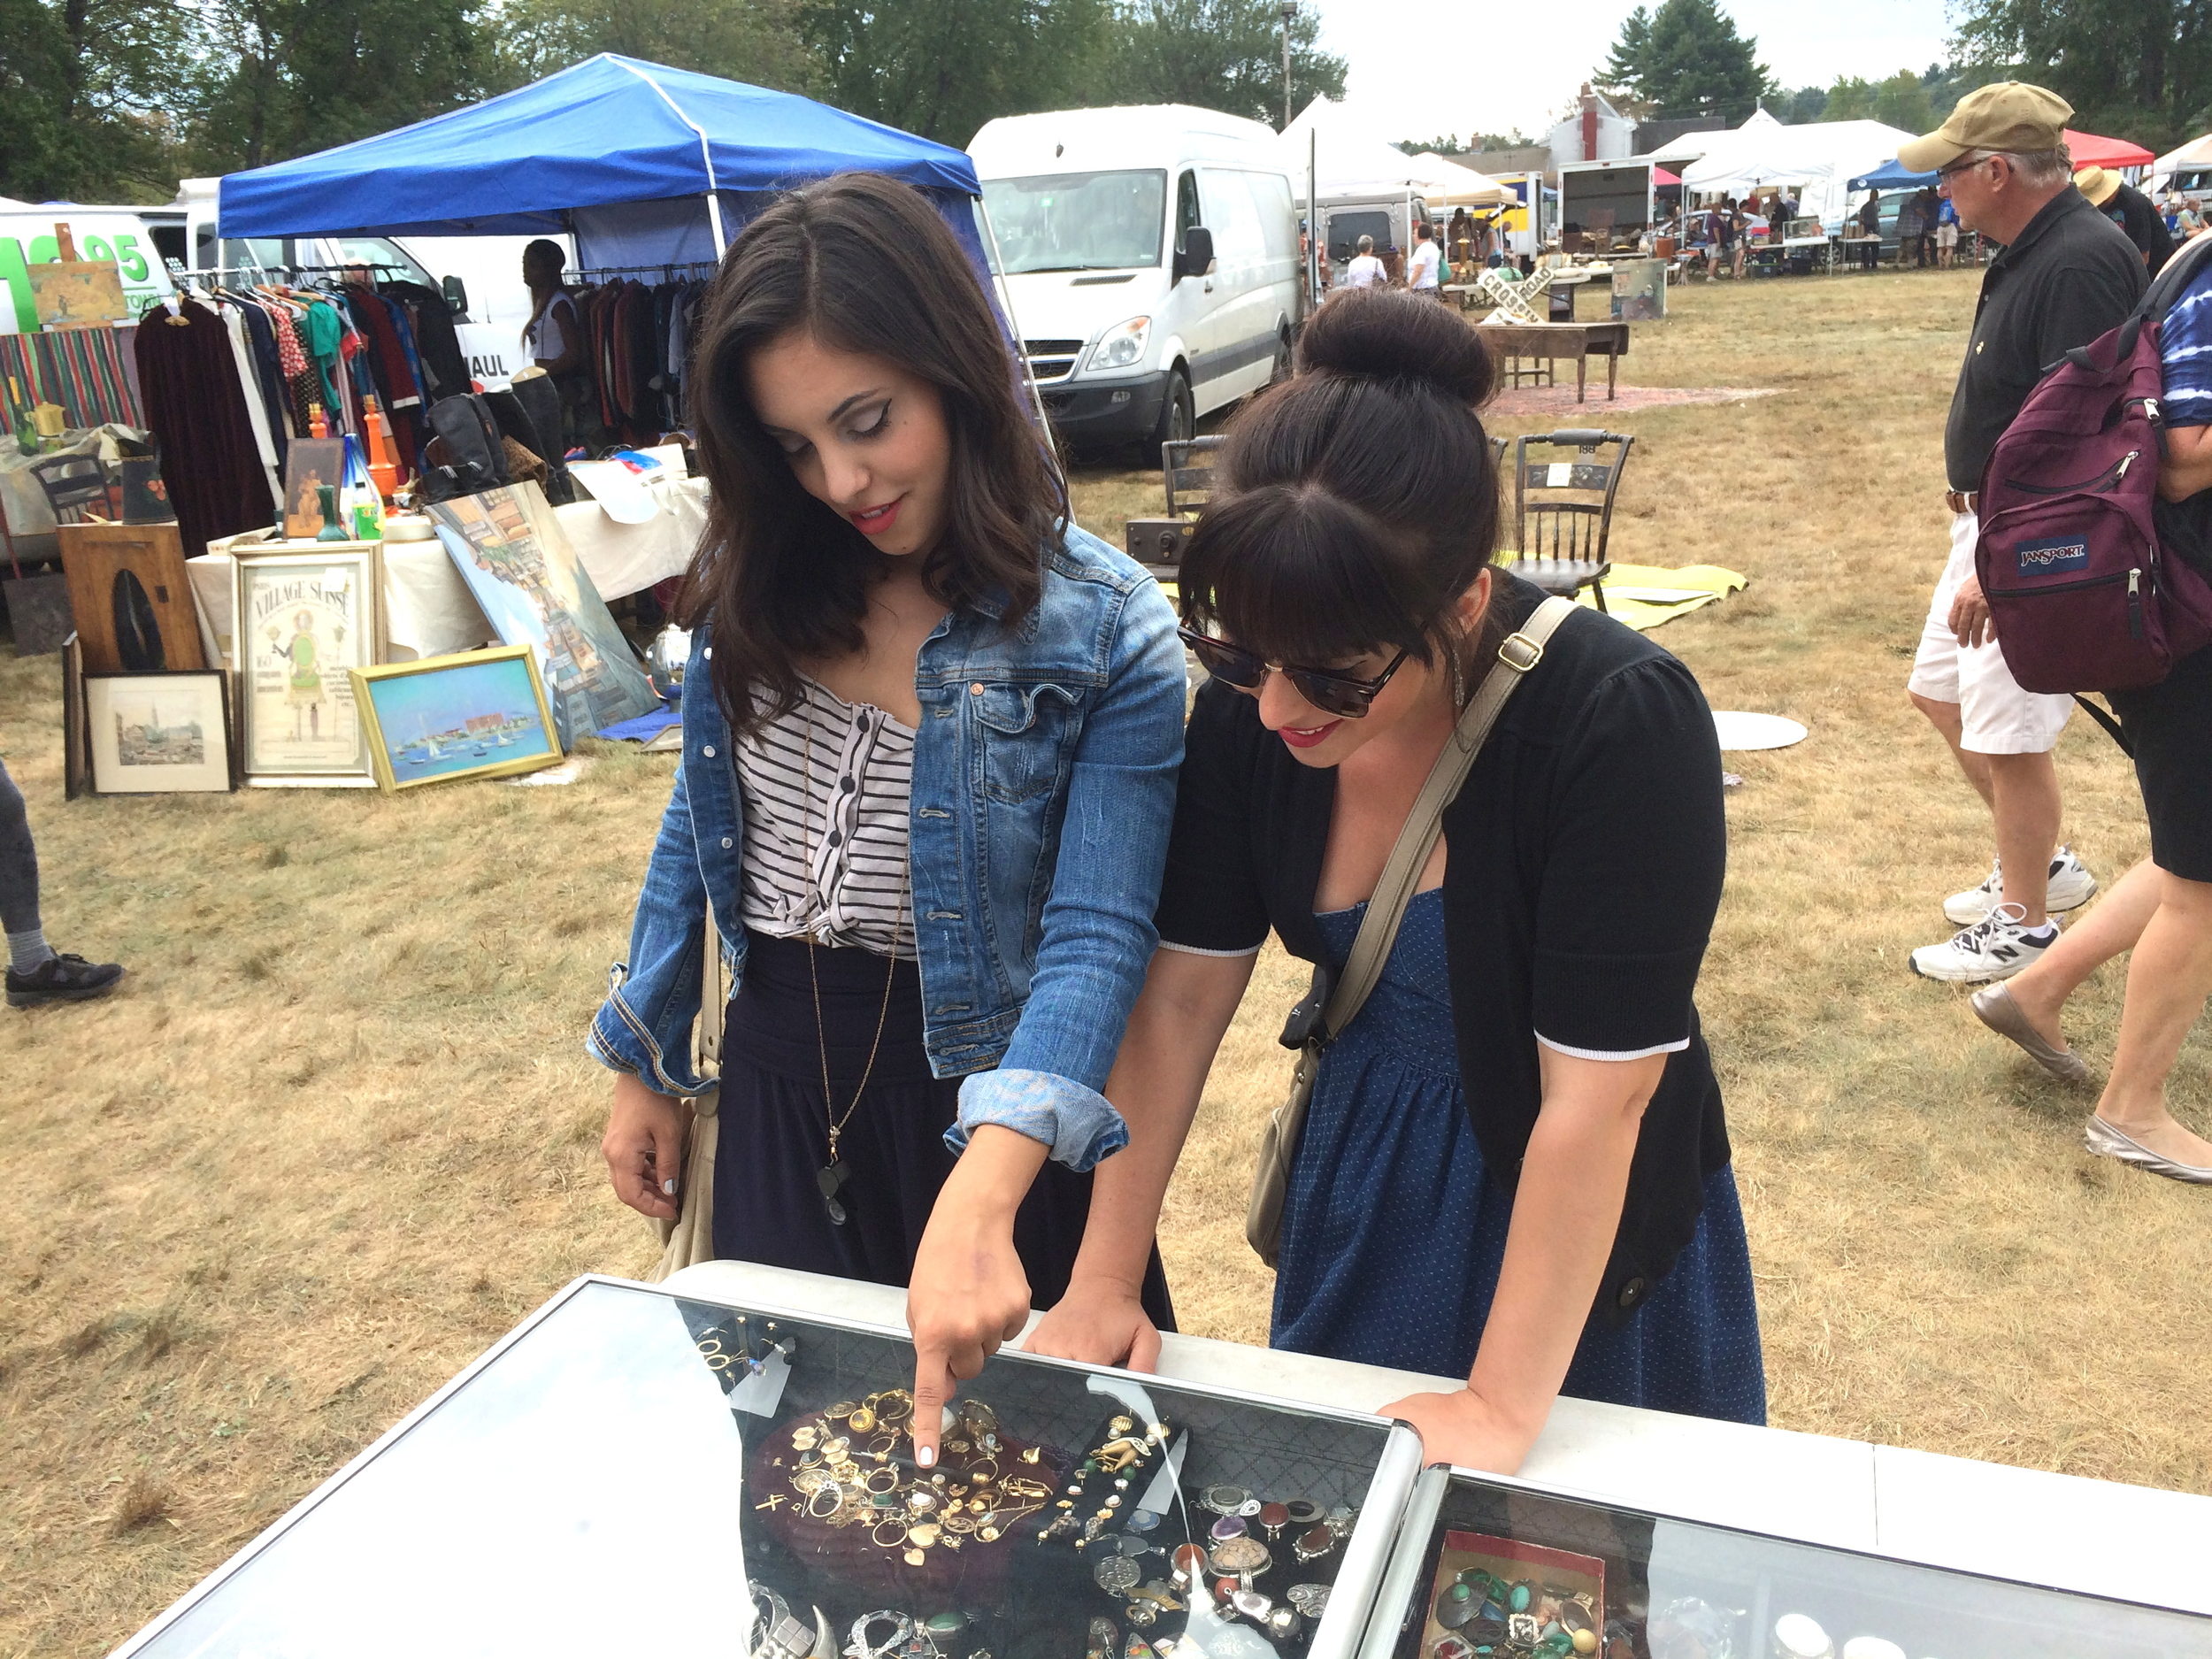 My sister Amanda Jean (left) and myself, Laura Mae (right) scooping out the antique jewels offered by one of our favorite antique dealers.